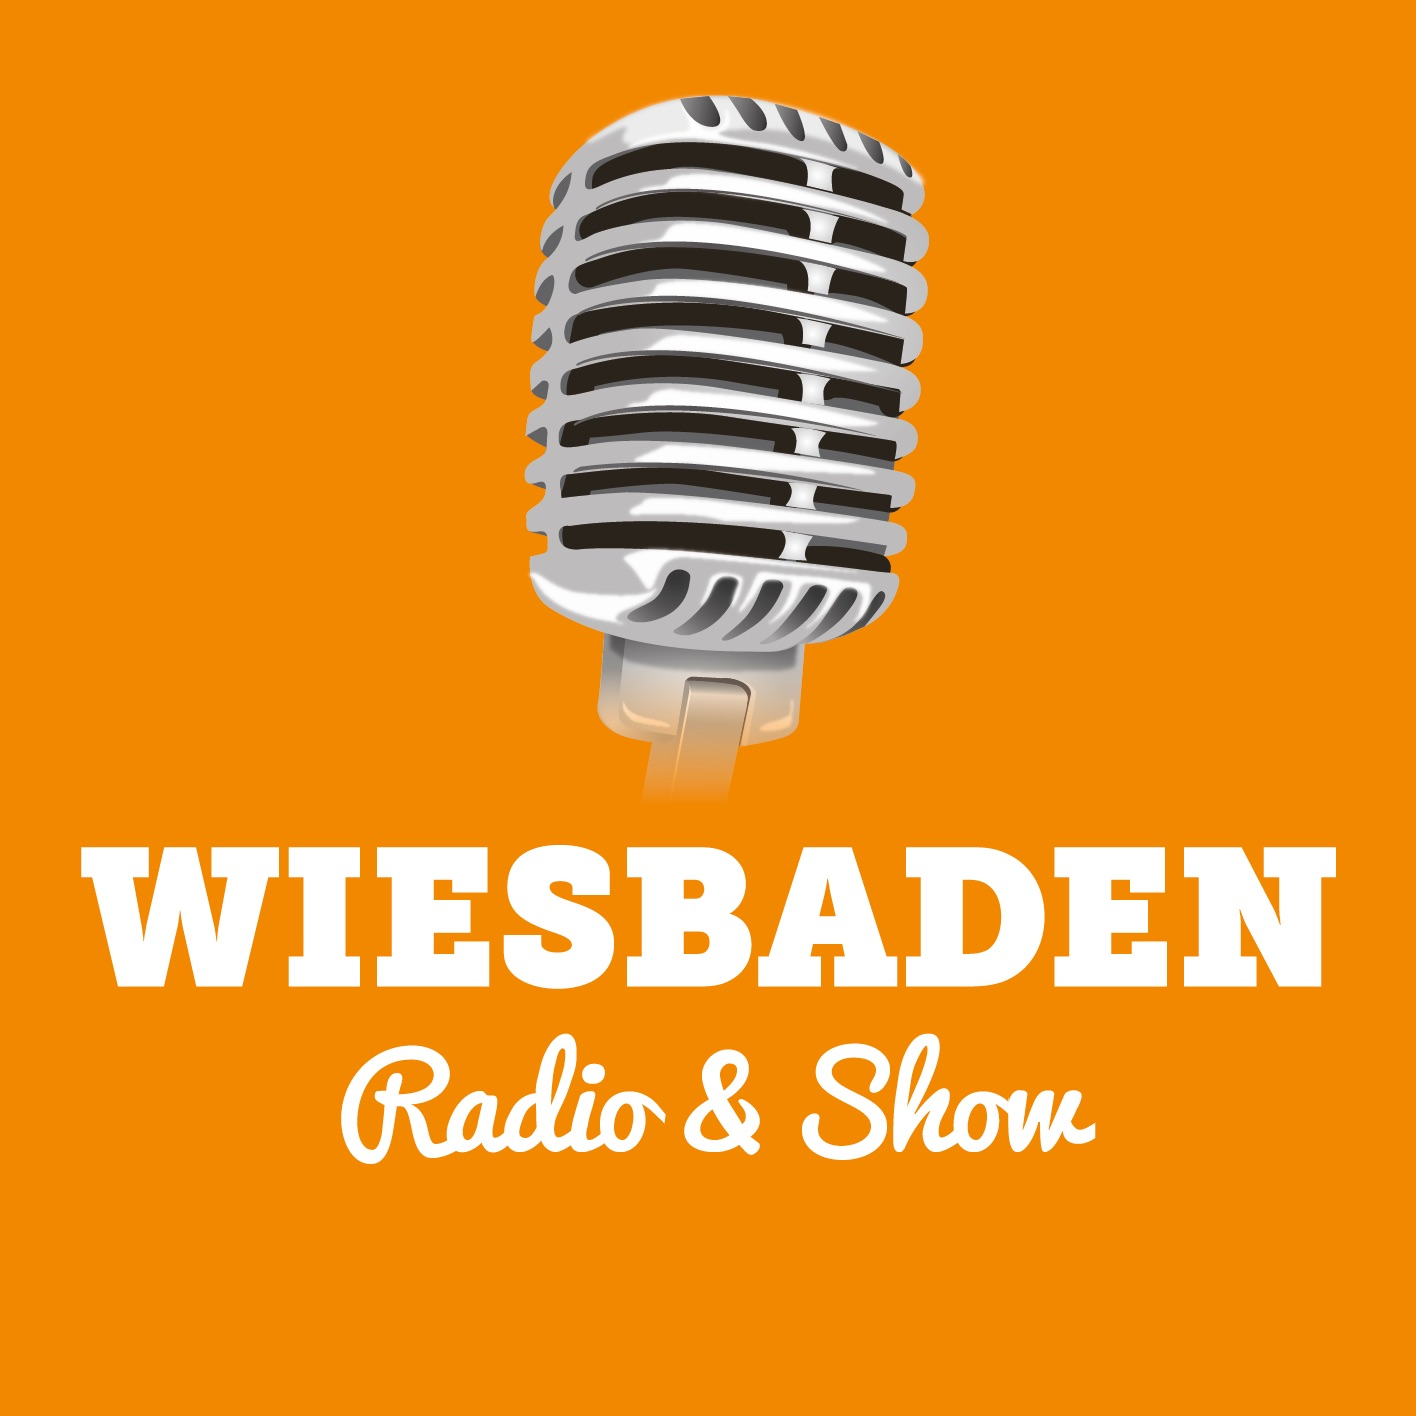 After Work Wohnzimmer Wiesbaden Tobi Carl Aka Dr Love Wiesbaden Radio Show Staffel 2 Night